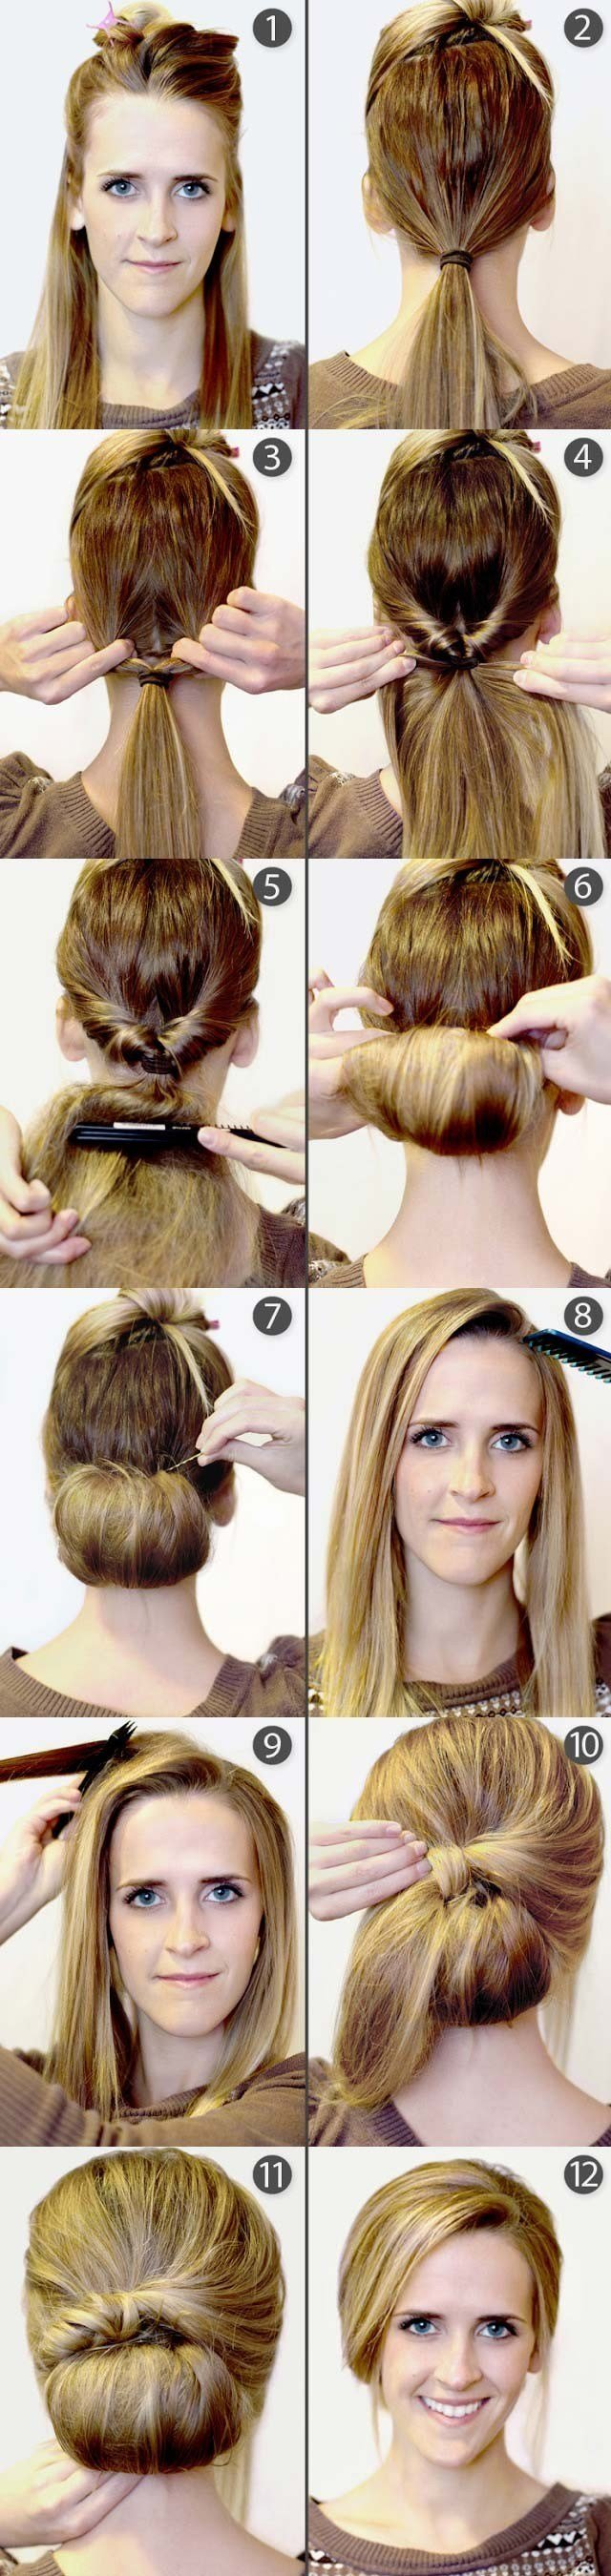 The Best 15 Cute Hairstyles Step By Step Hairstyles For Long Hair Pictures